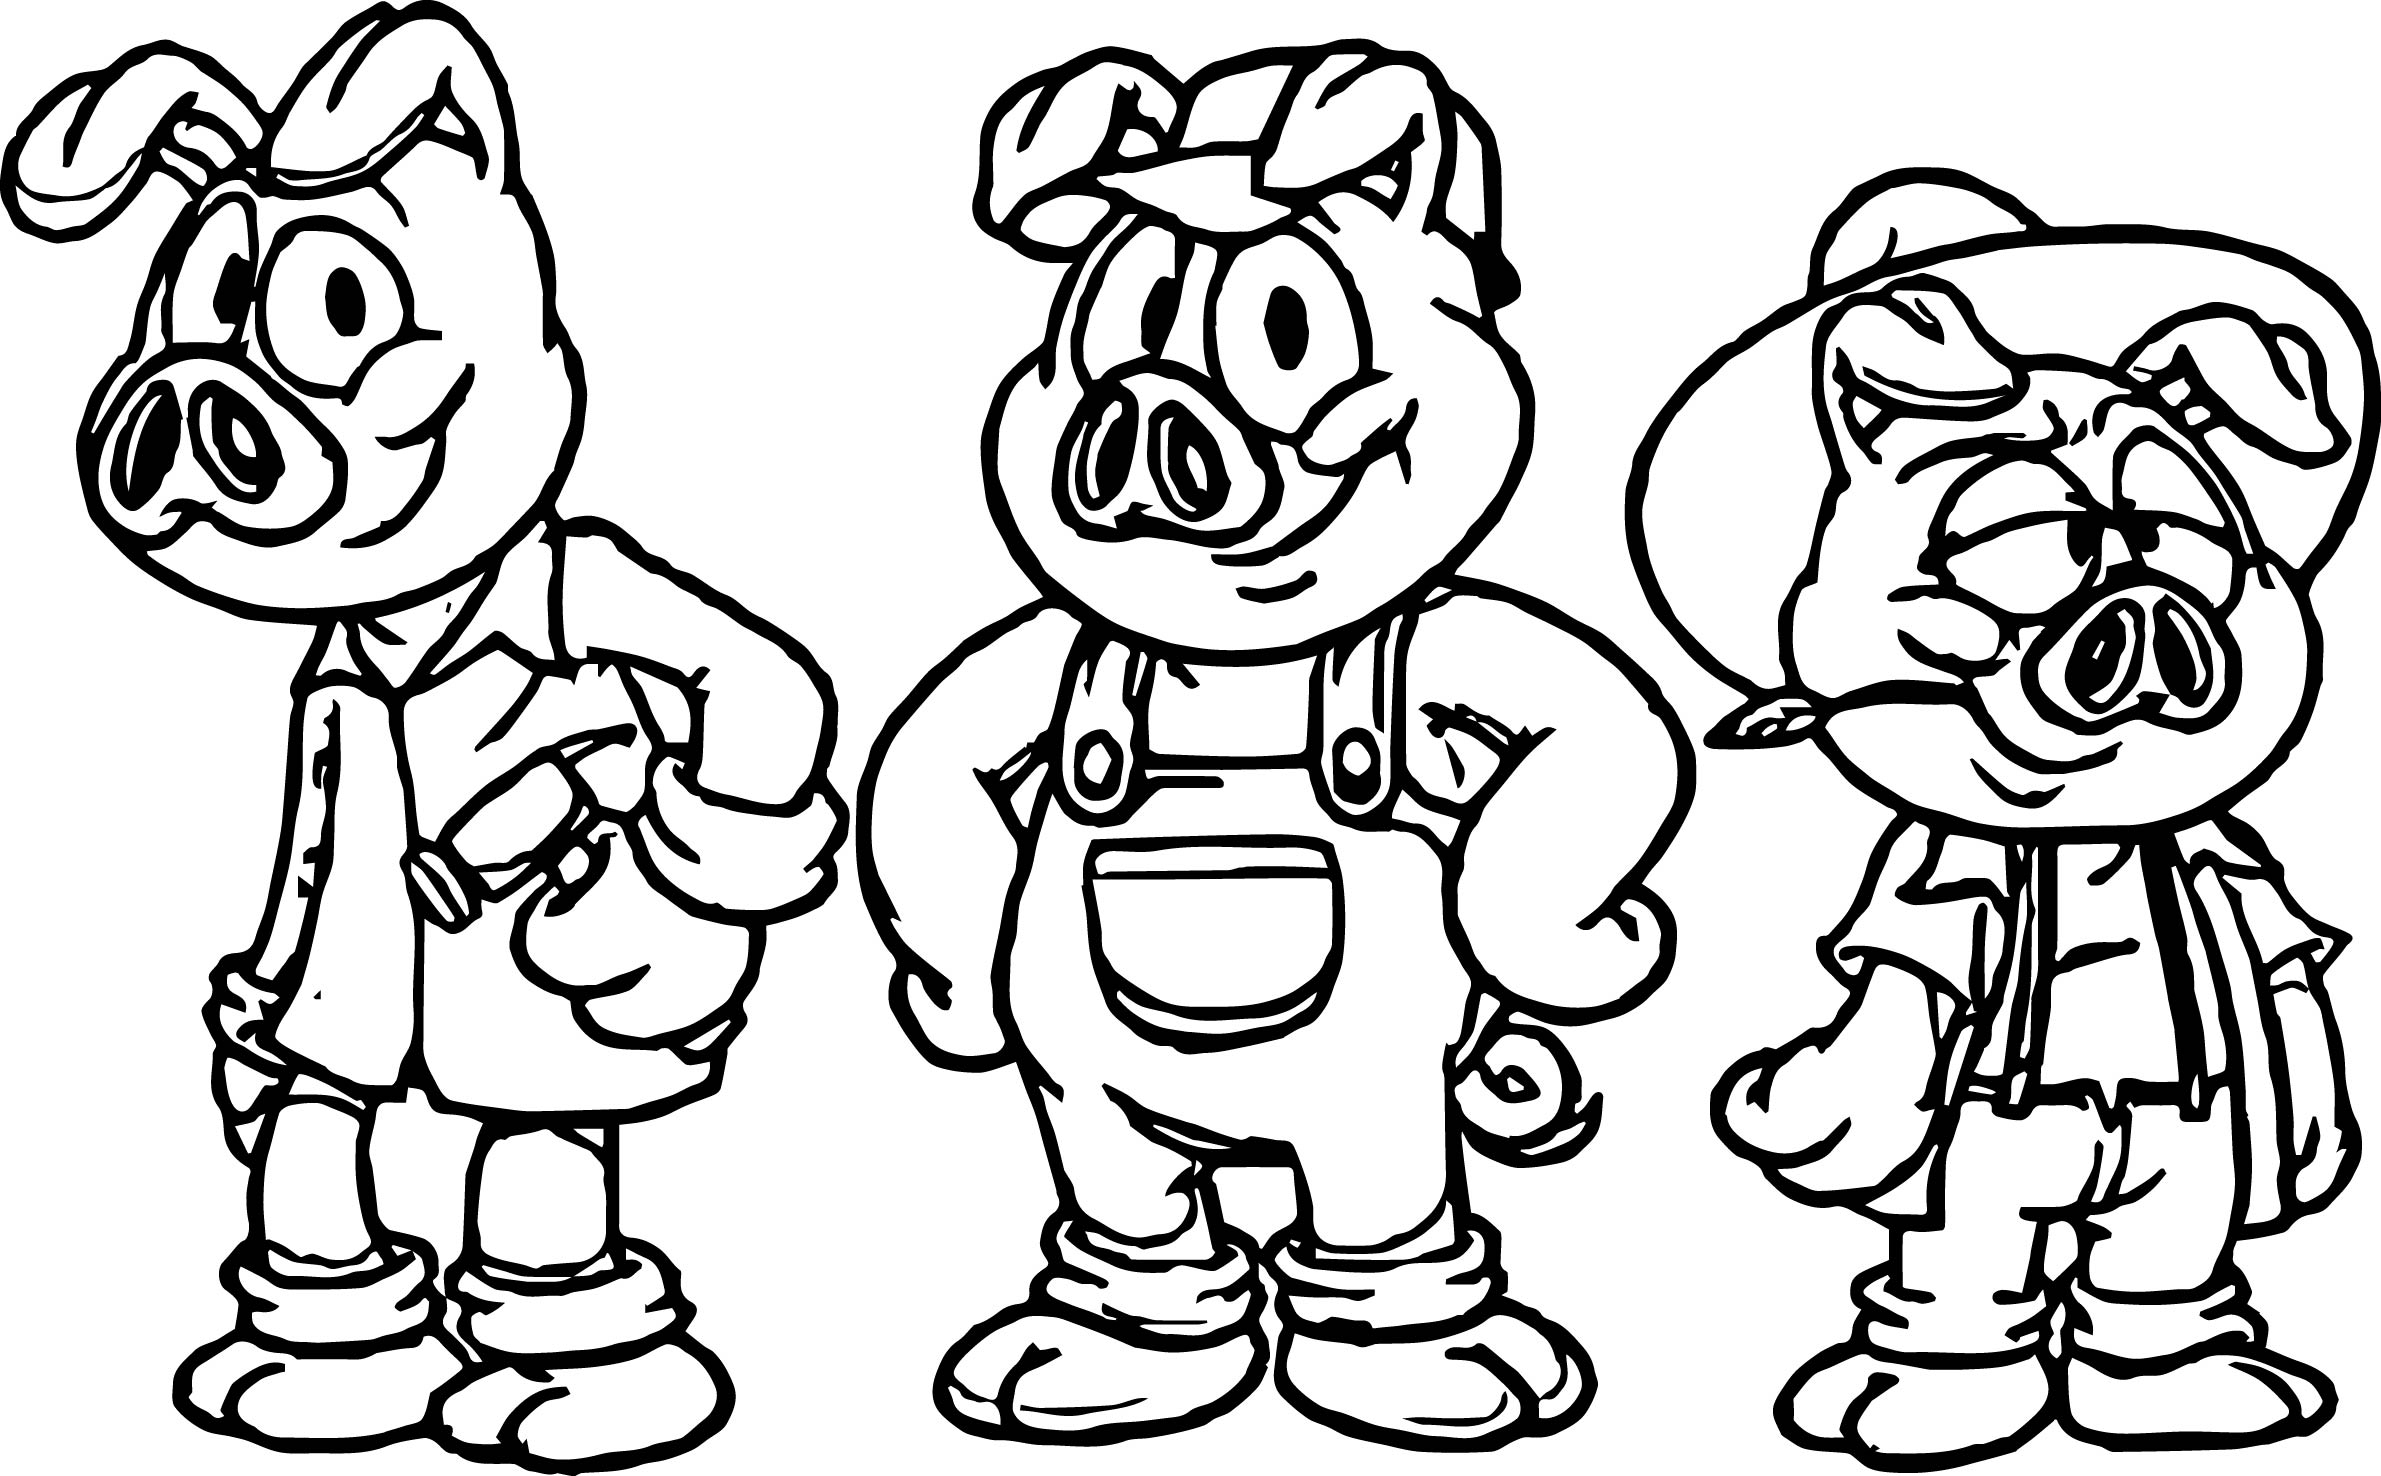 Uncategorized Three Little Pigs Coloring best cartoon 3 little pigs coloring page wecoloringpage page